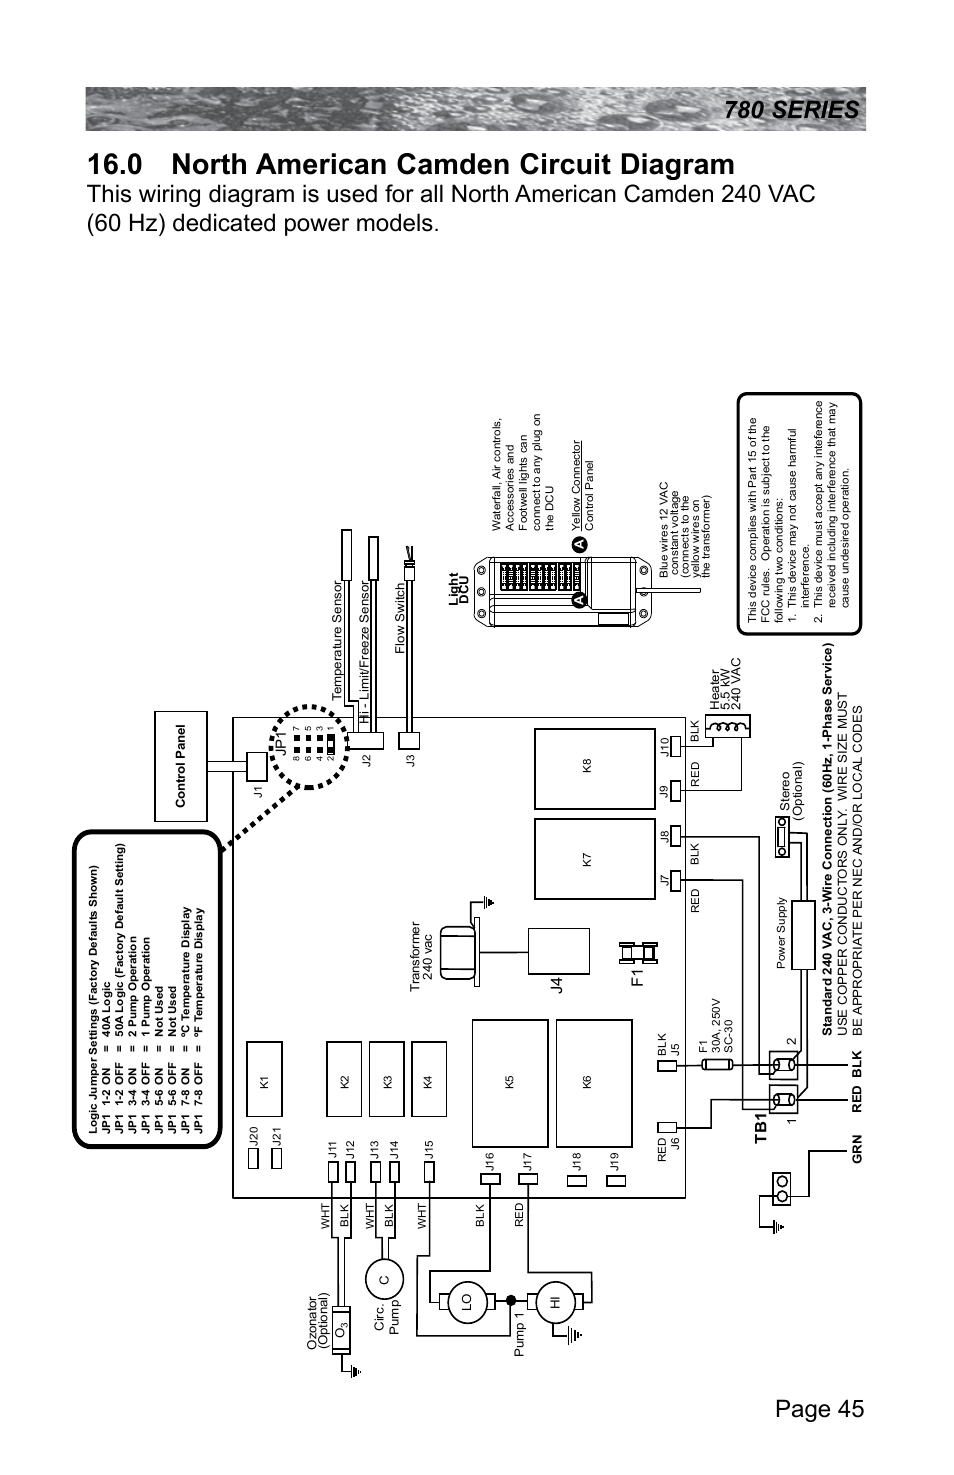 Jacuzzi Wiring Diagram from lh6.googleusercontent.com